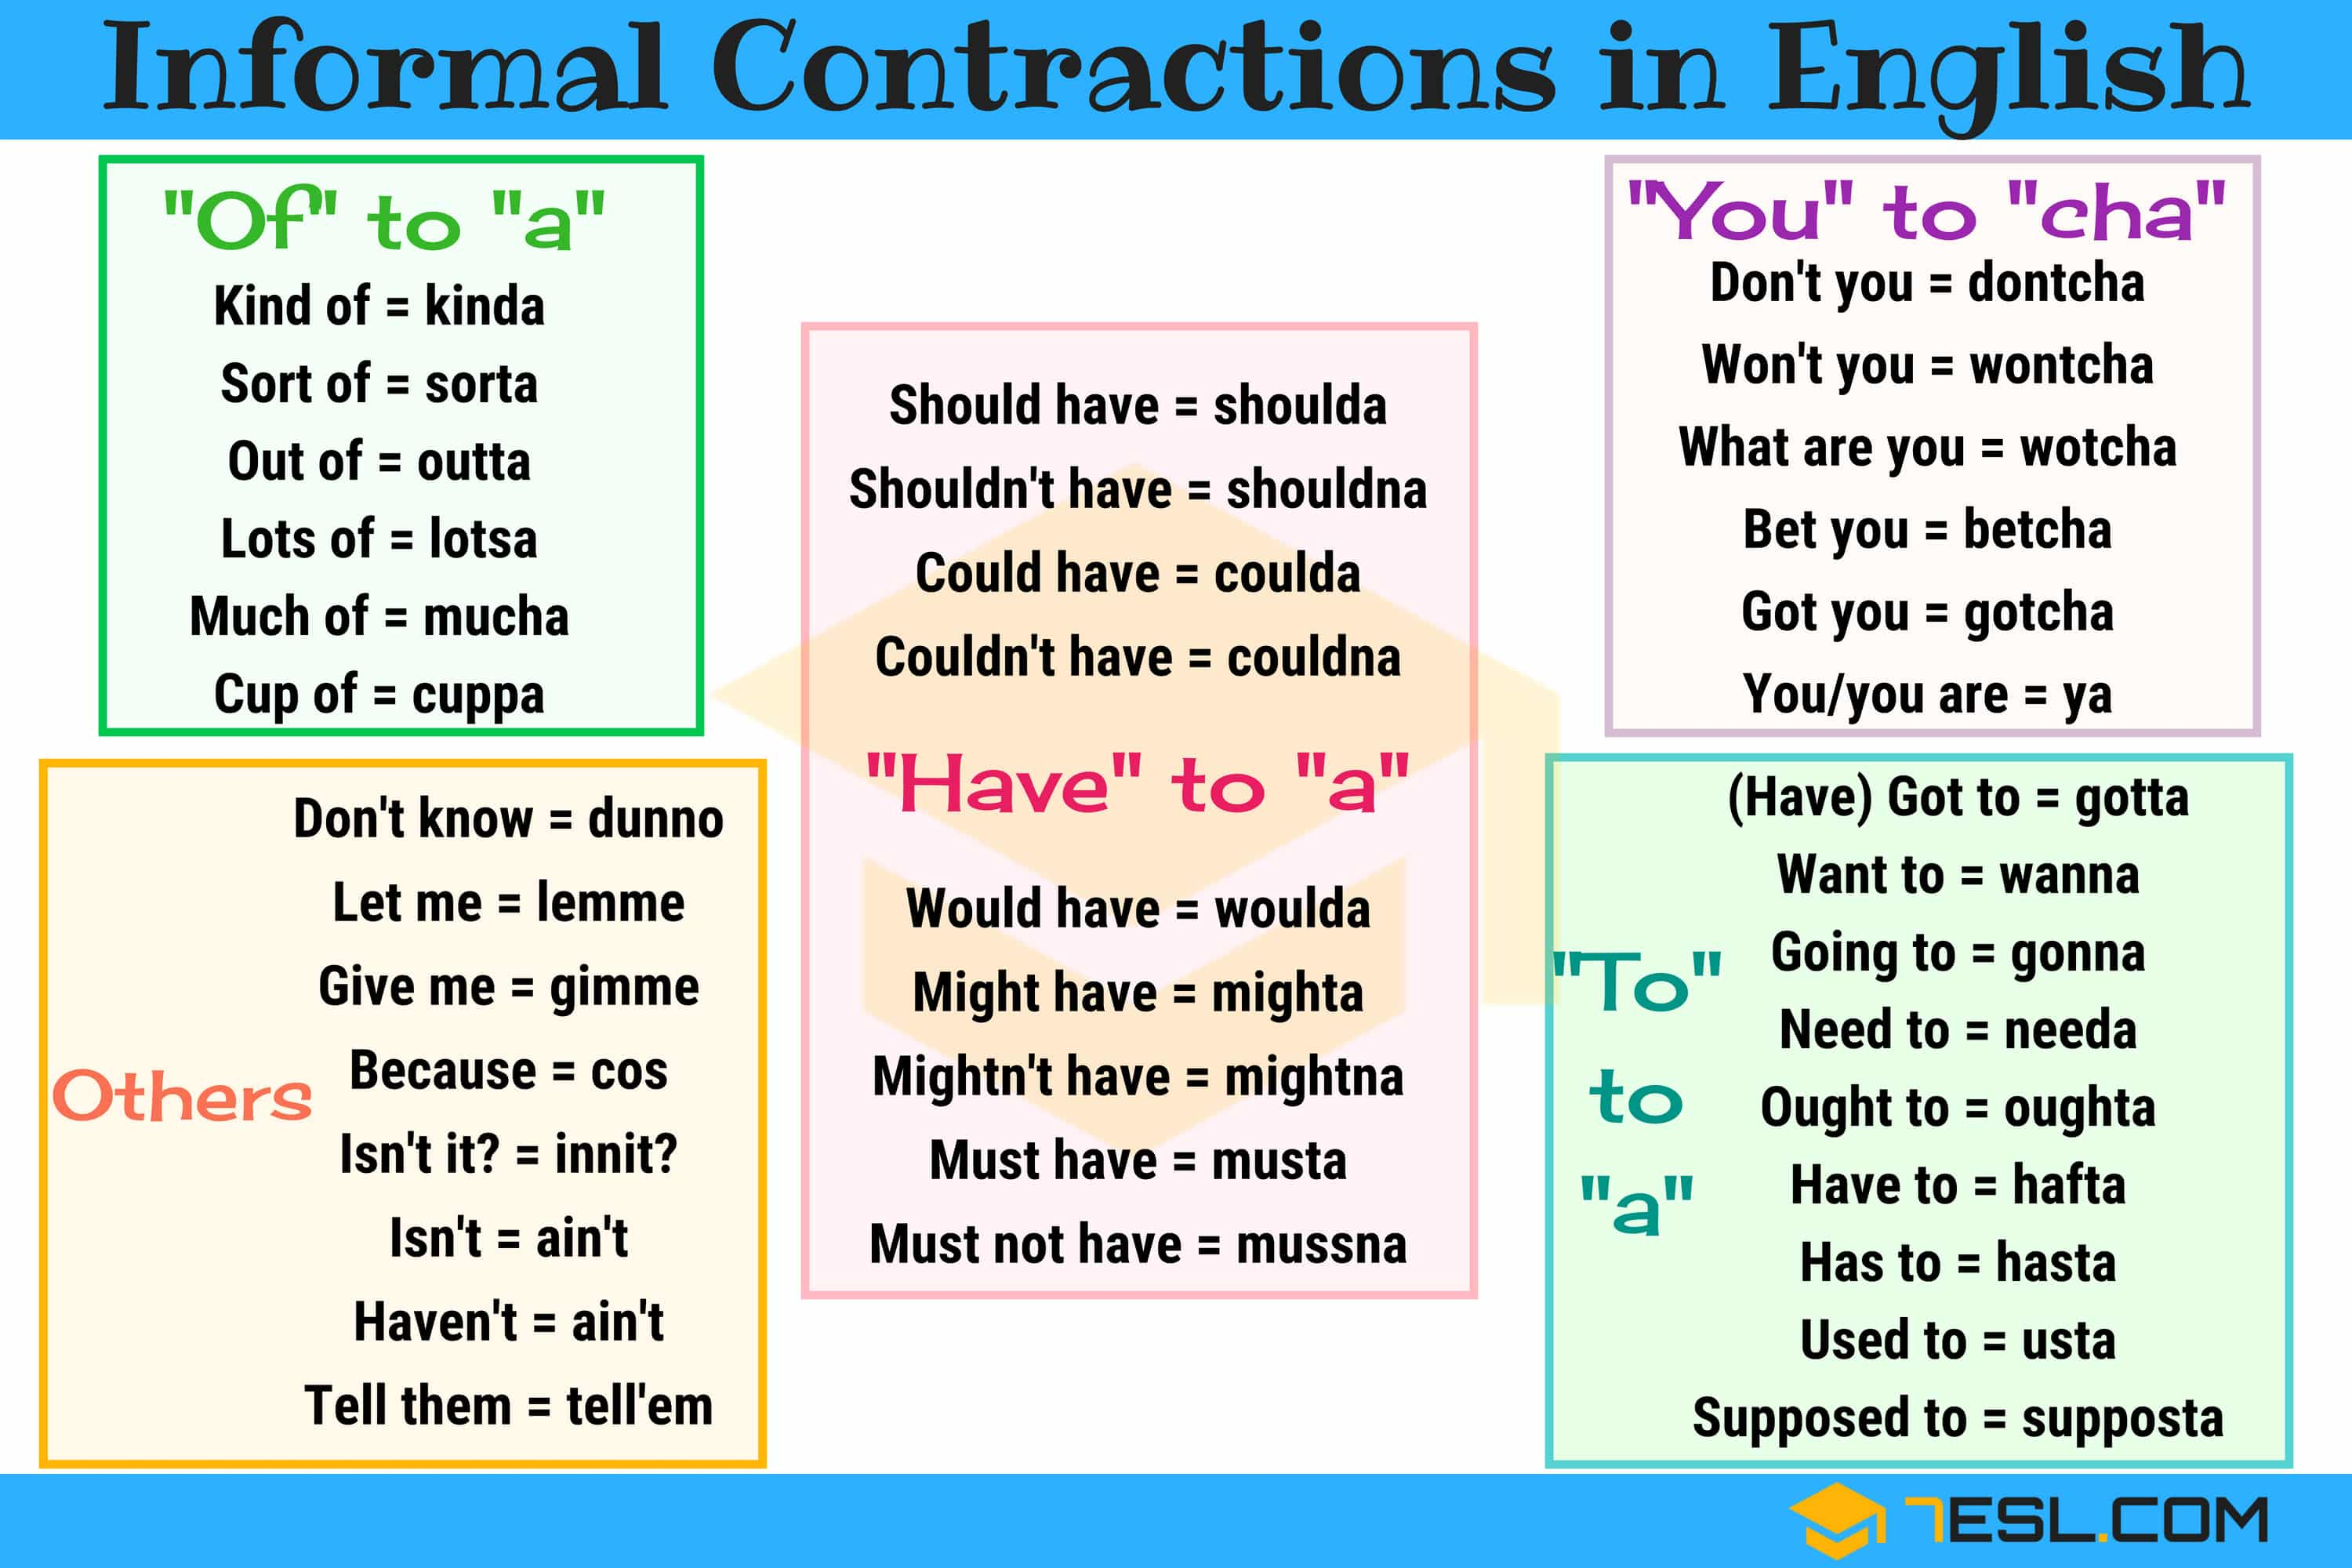 Informal Contractions List In English With Examples